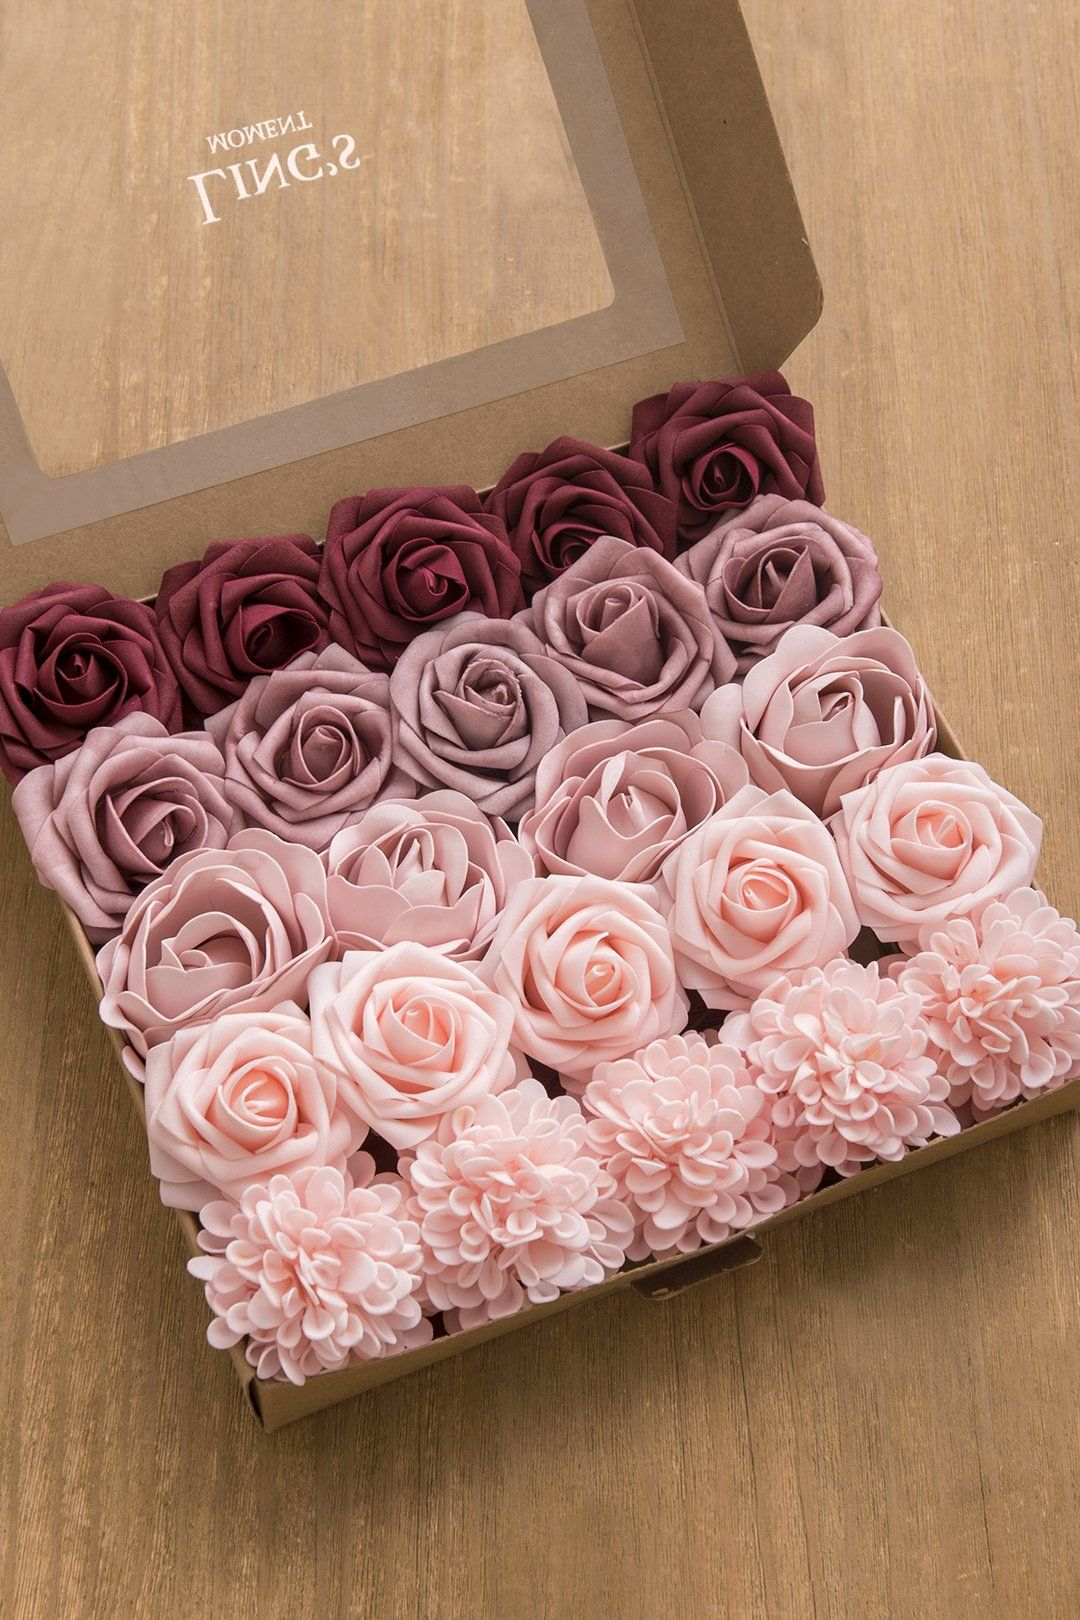 Flowers Box Sets for SALE 6 Styles in 2020 Burgundy